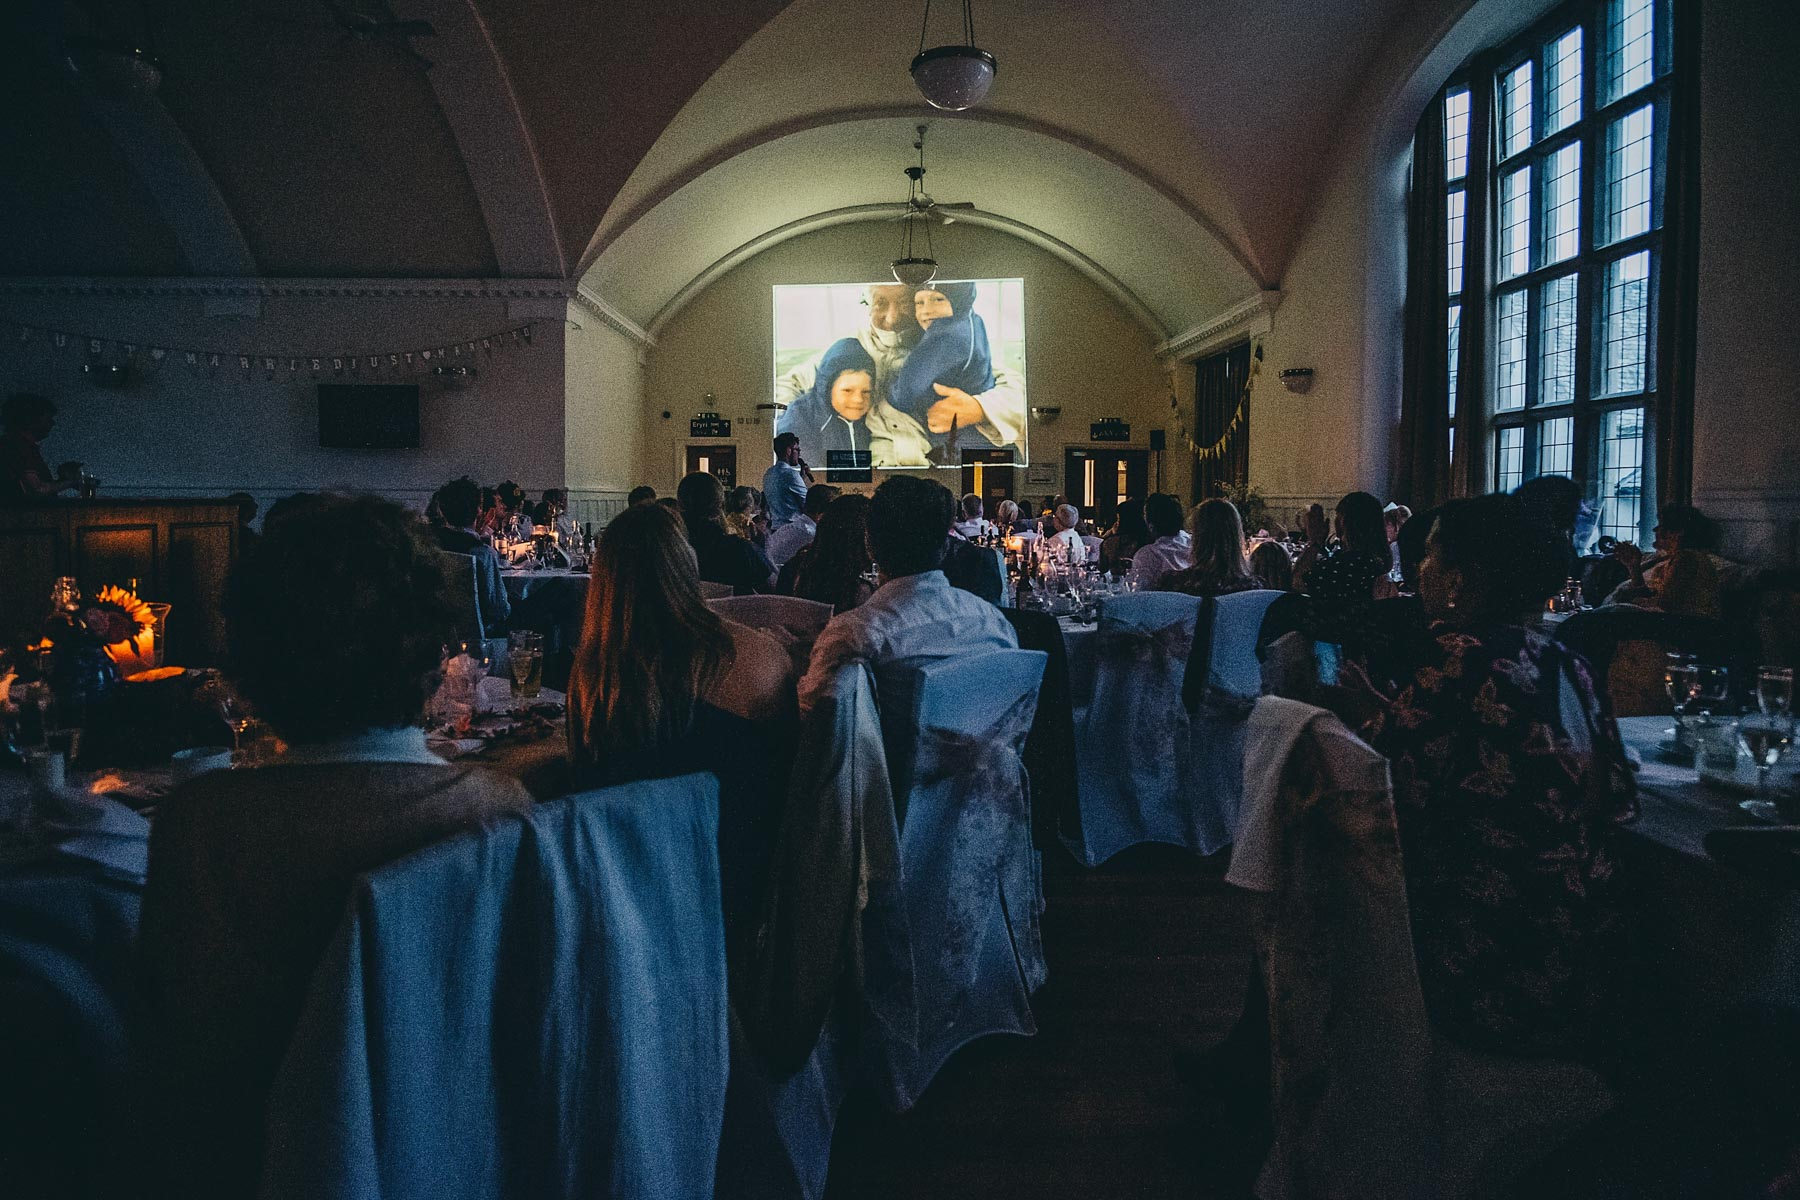 Guests look on during projection at wedding speeches